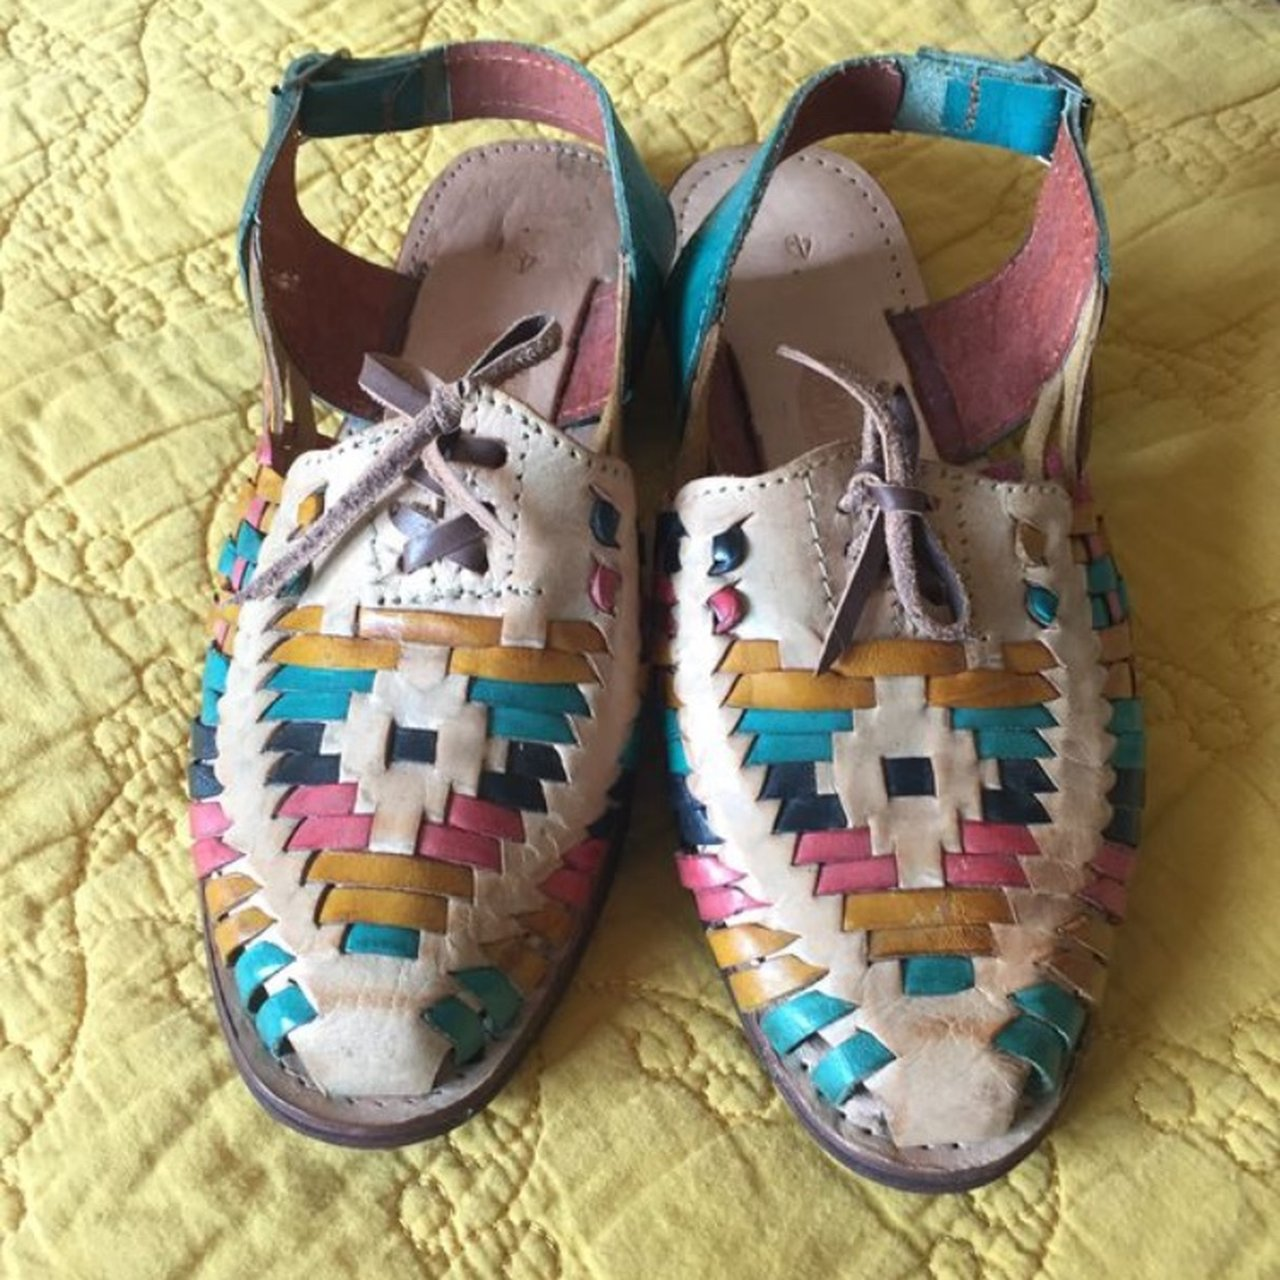 06c42943dcf429 Never been worn authentic Mexican leather huaraches. I wish - Depop